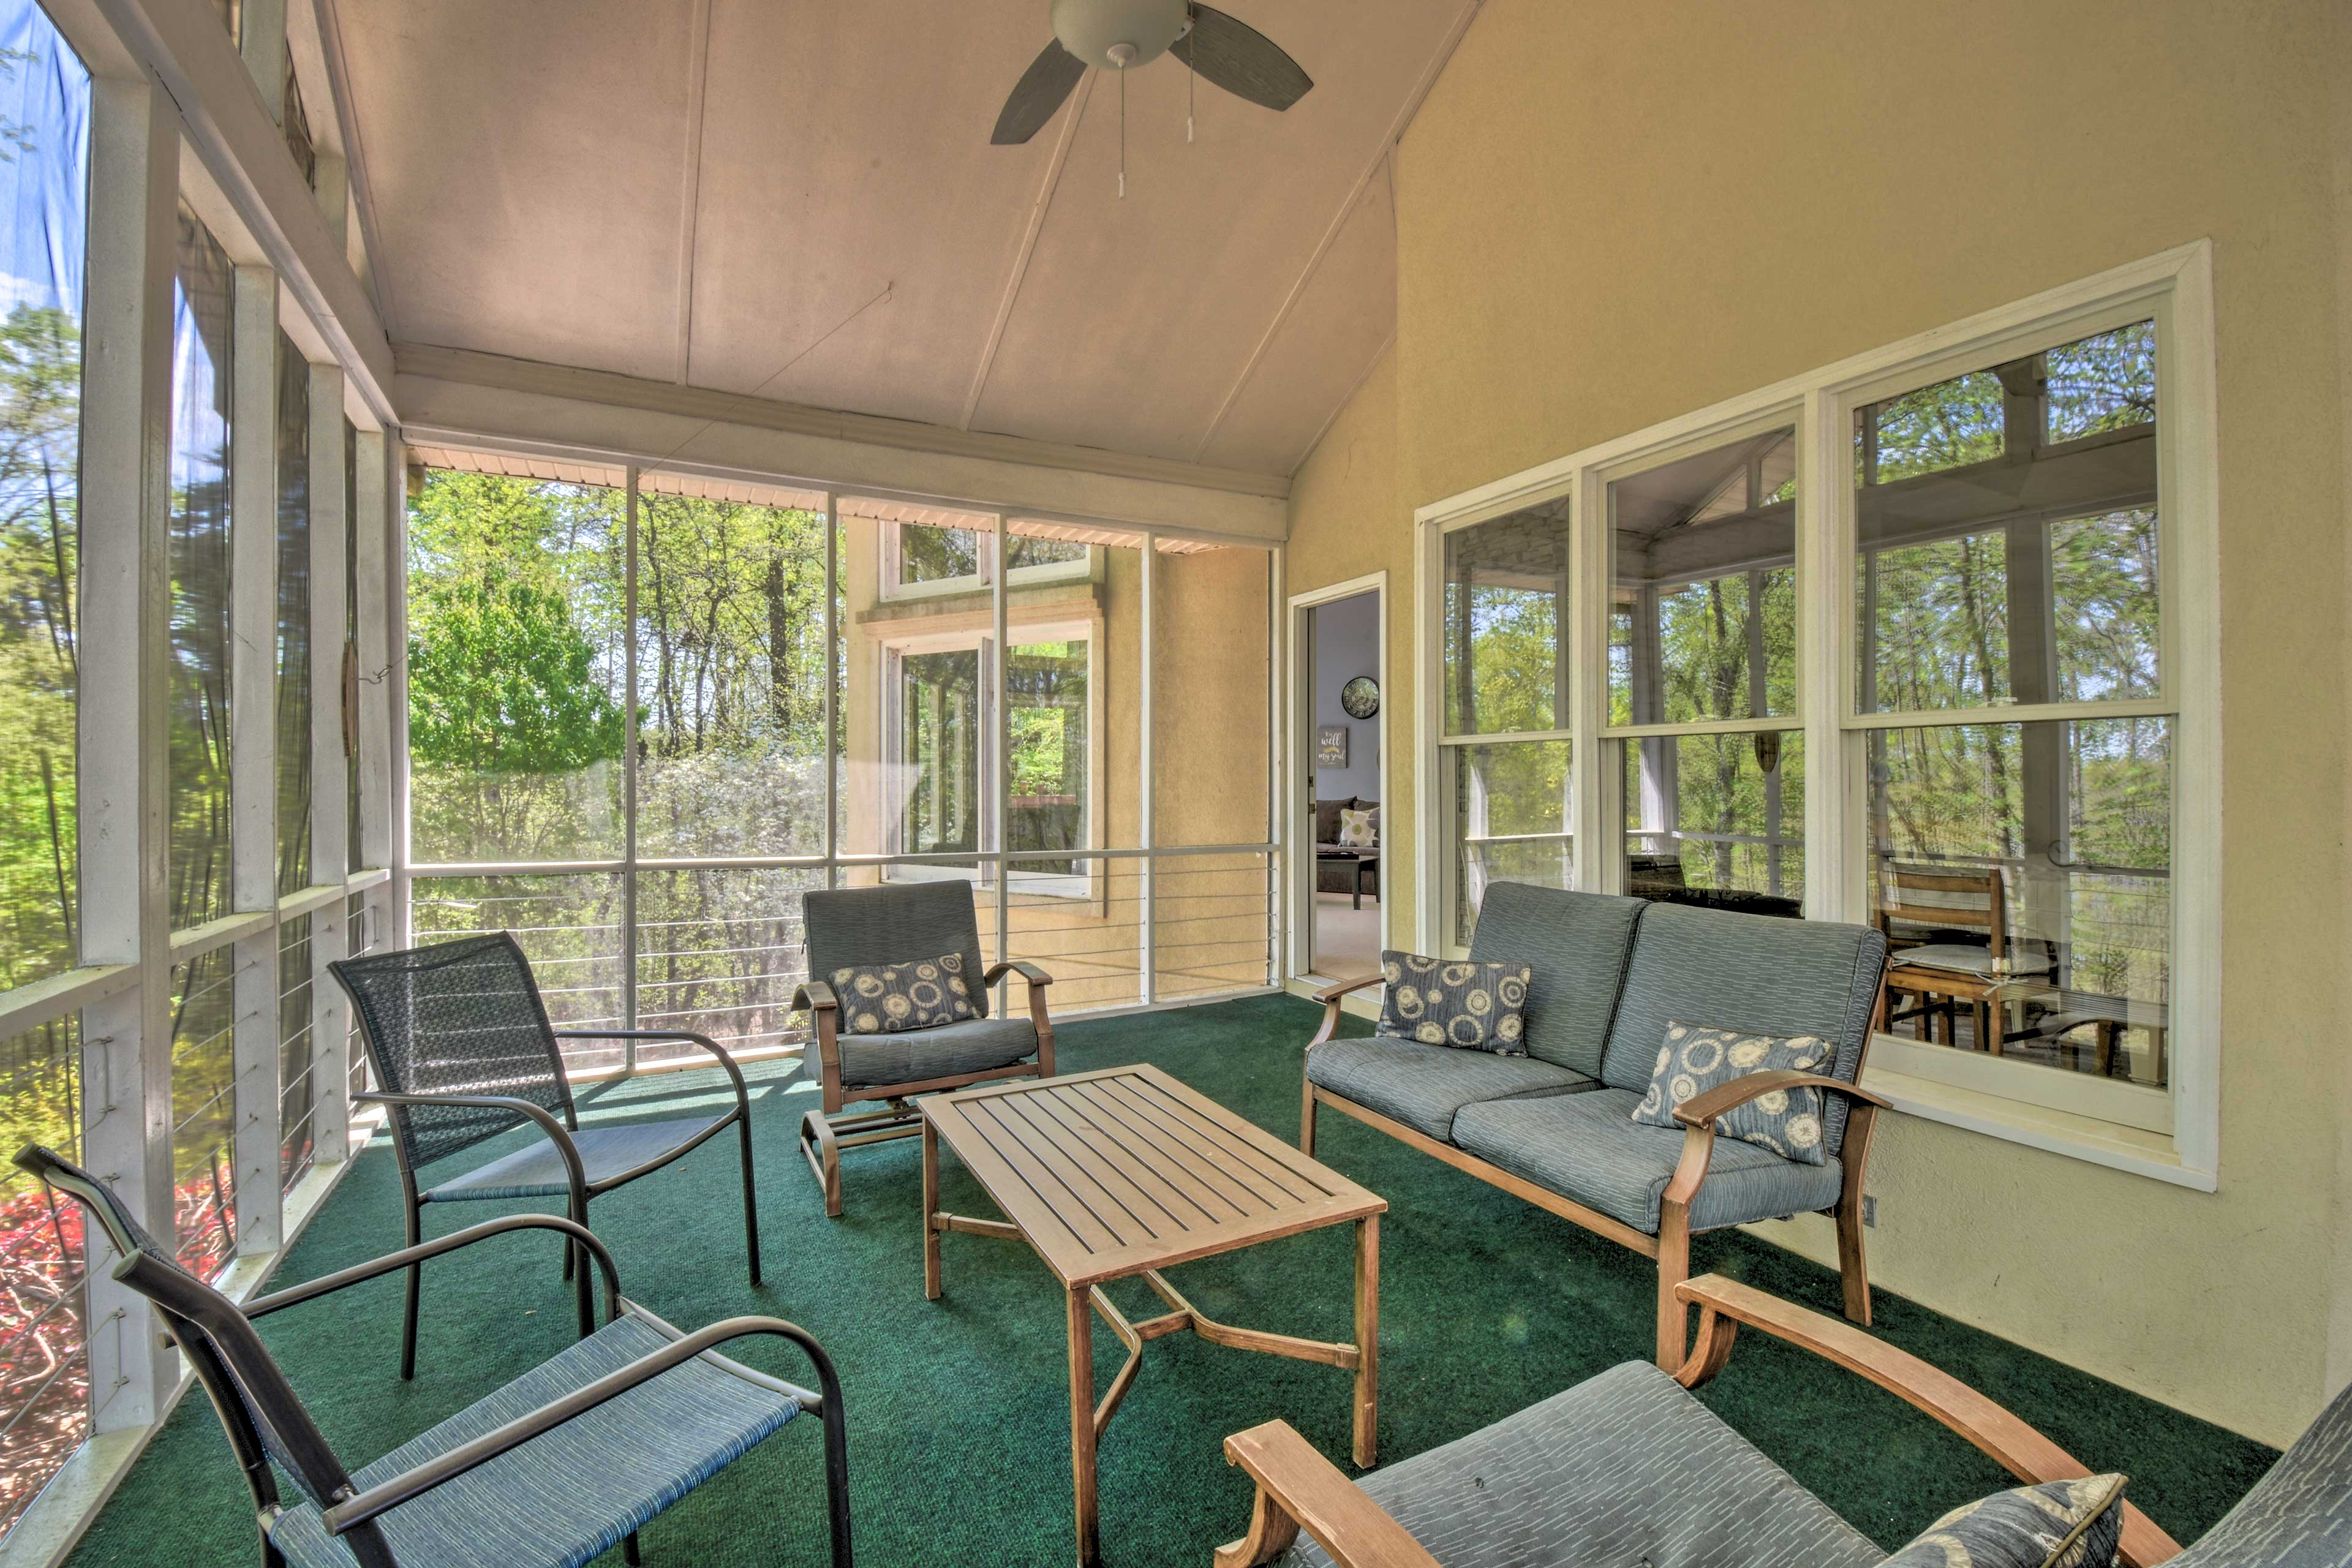 Sip iced tea while you read in the bright sunroom.